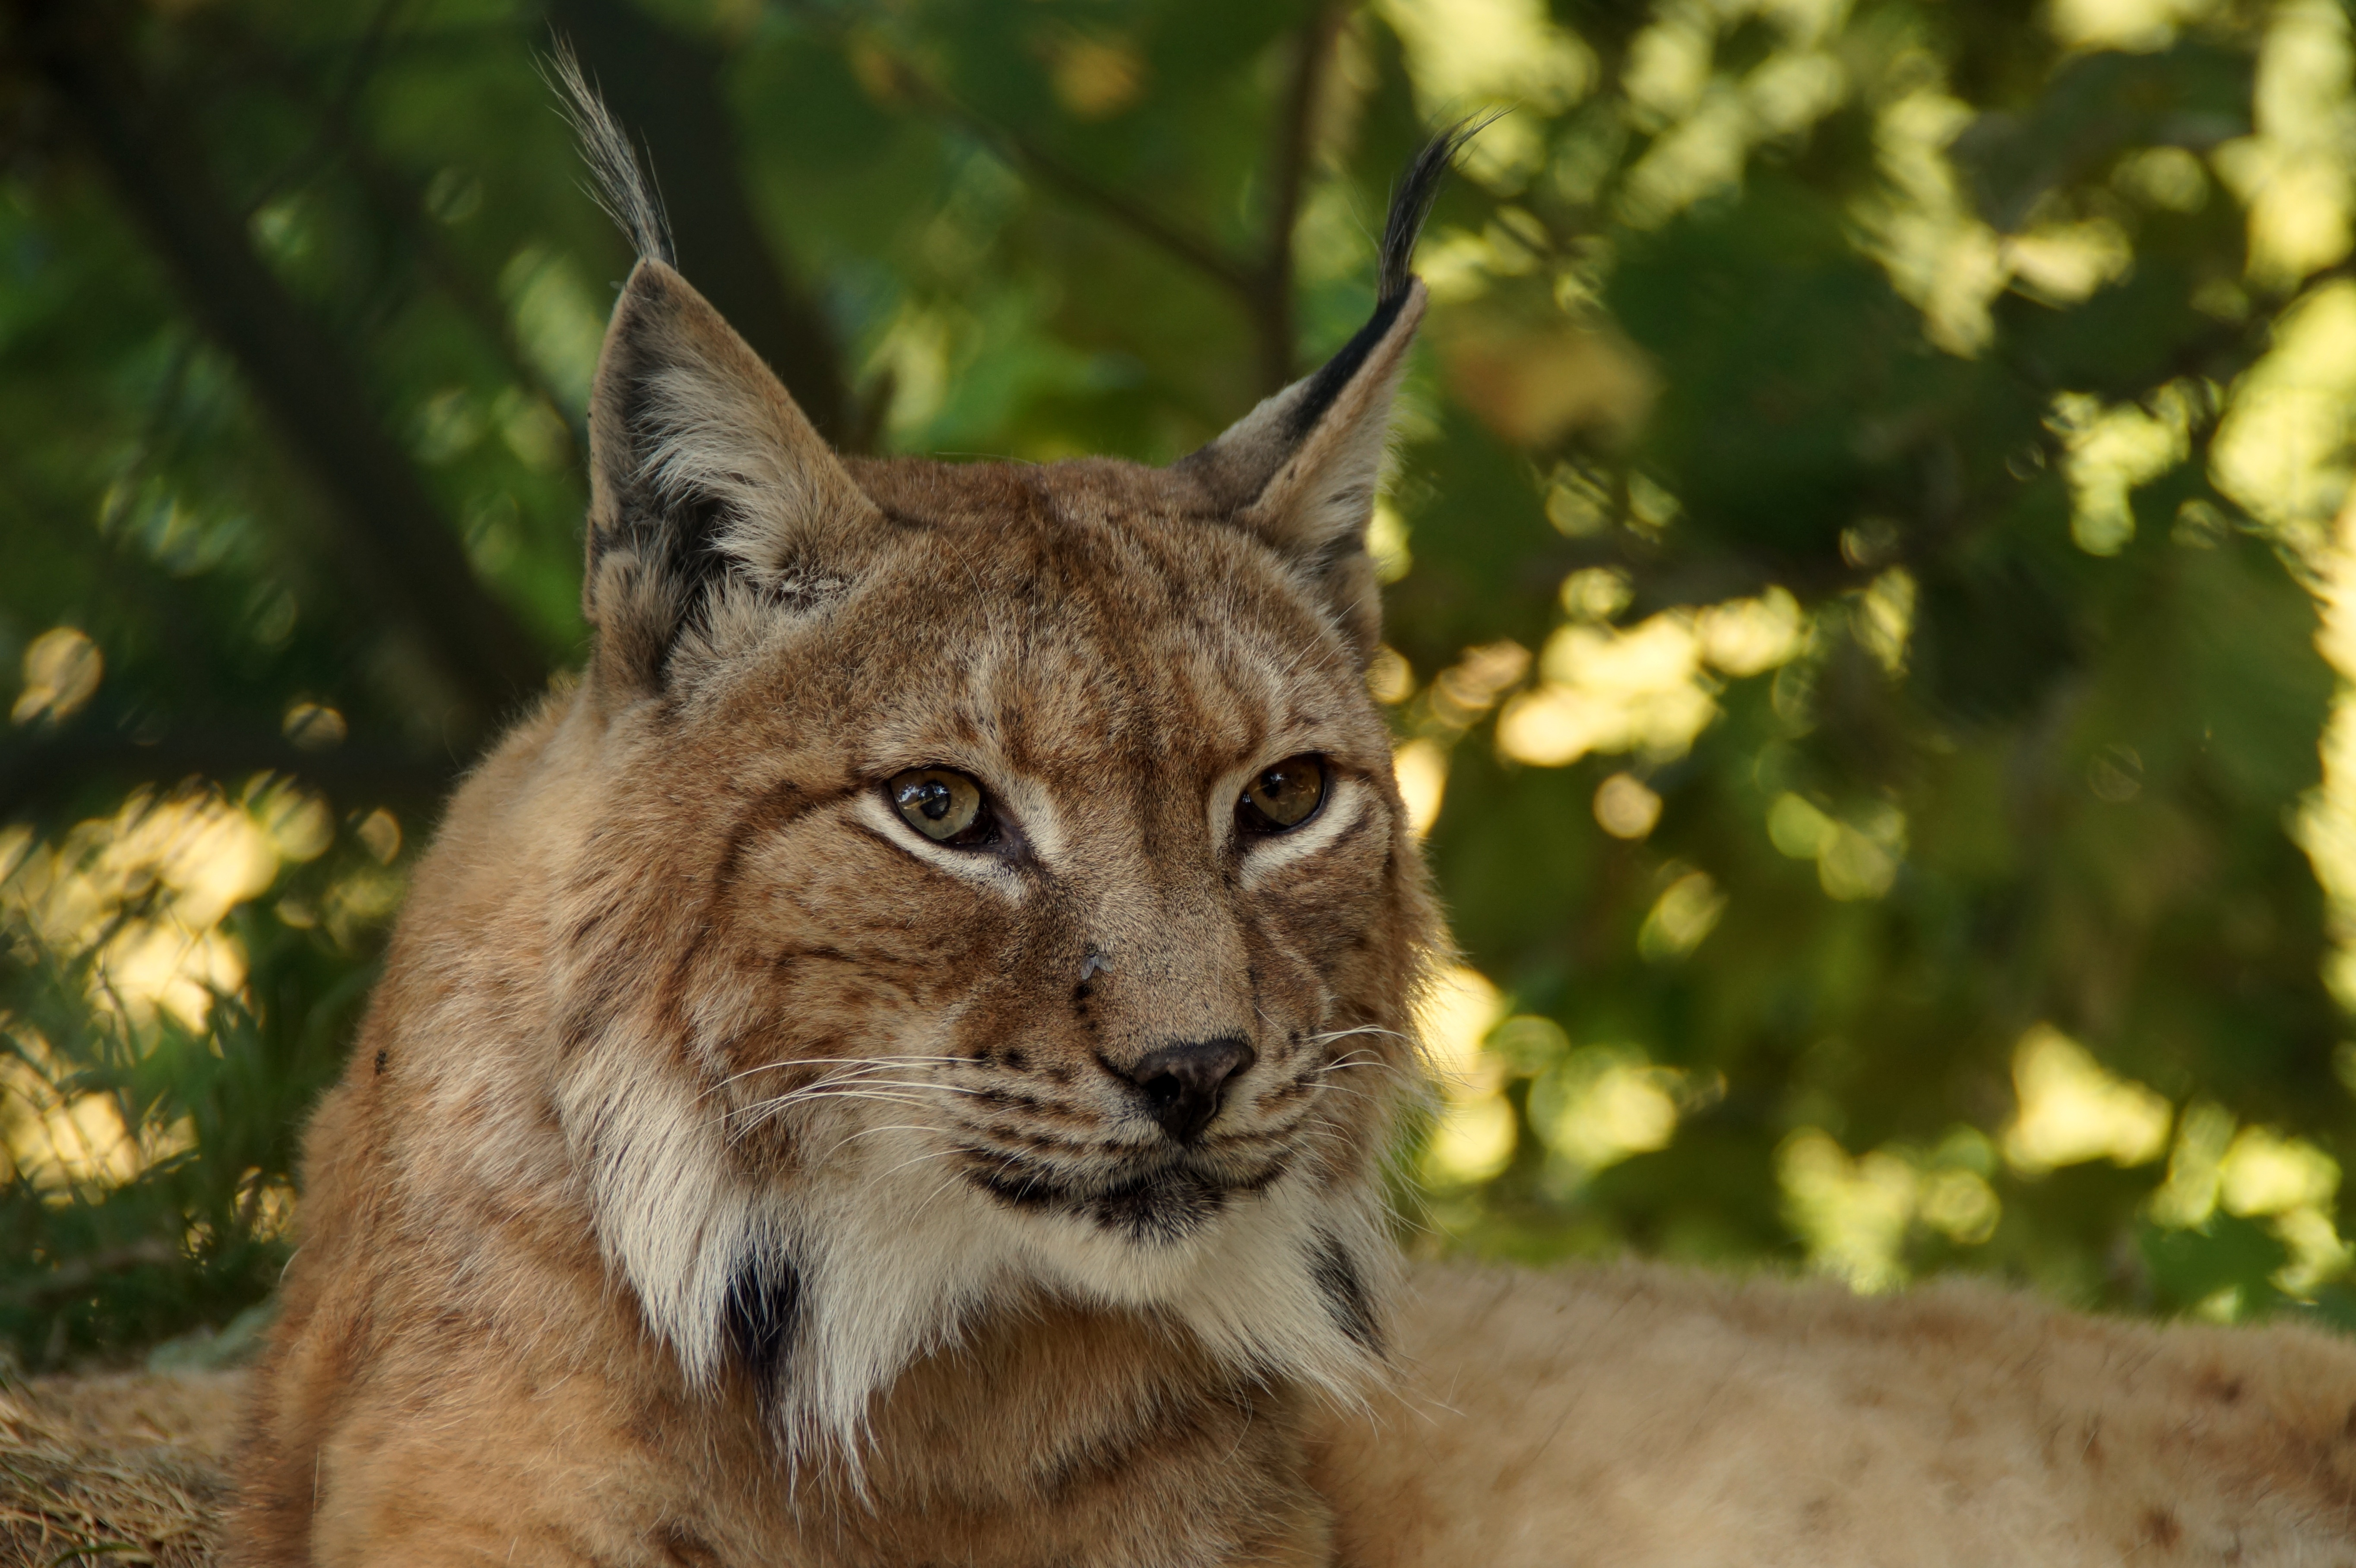 156444 download wallpaper Animals, Iris, Muzzle, Predator, Big Cat screensavers and pictures for free